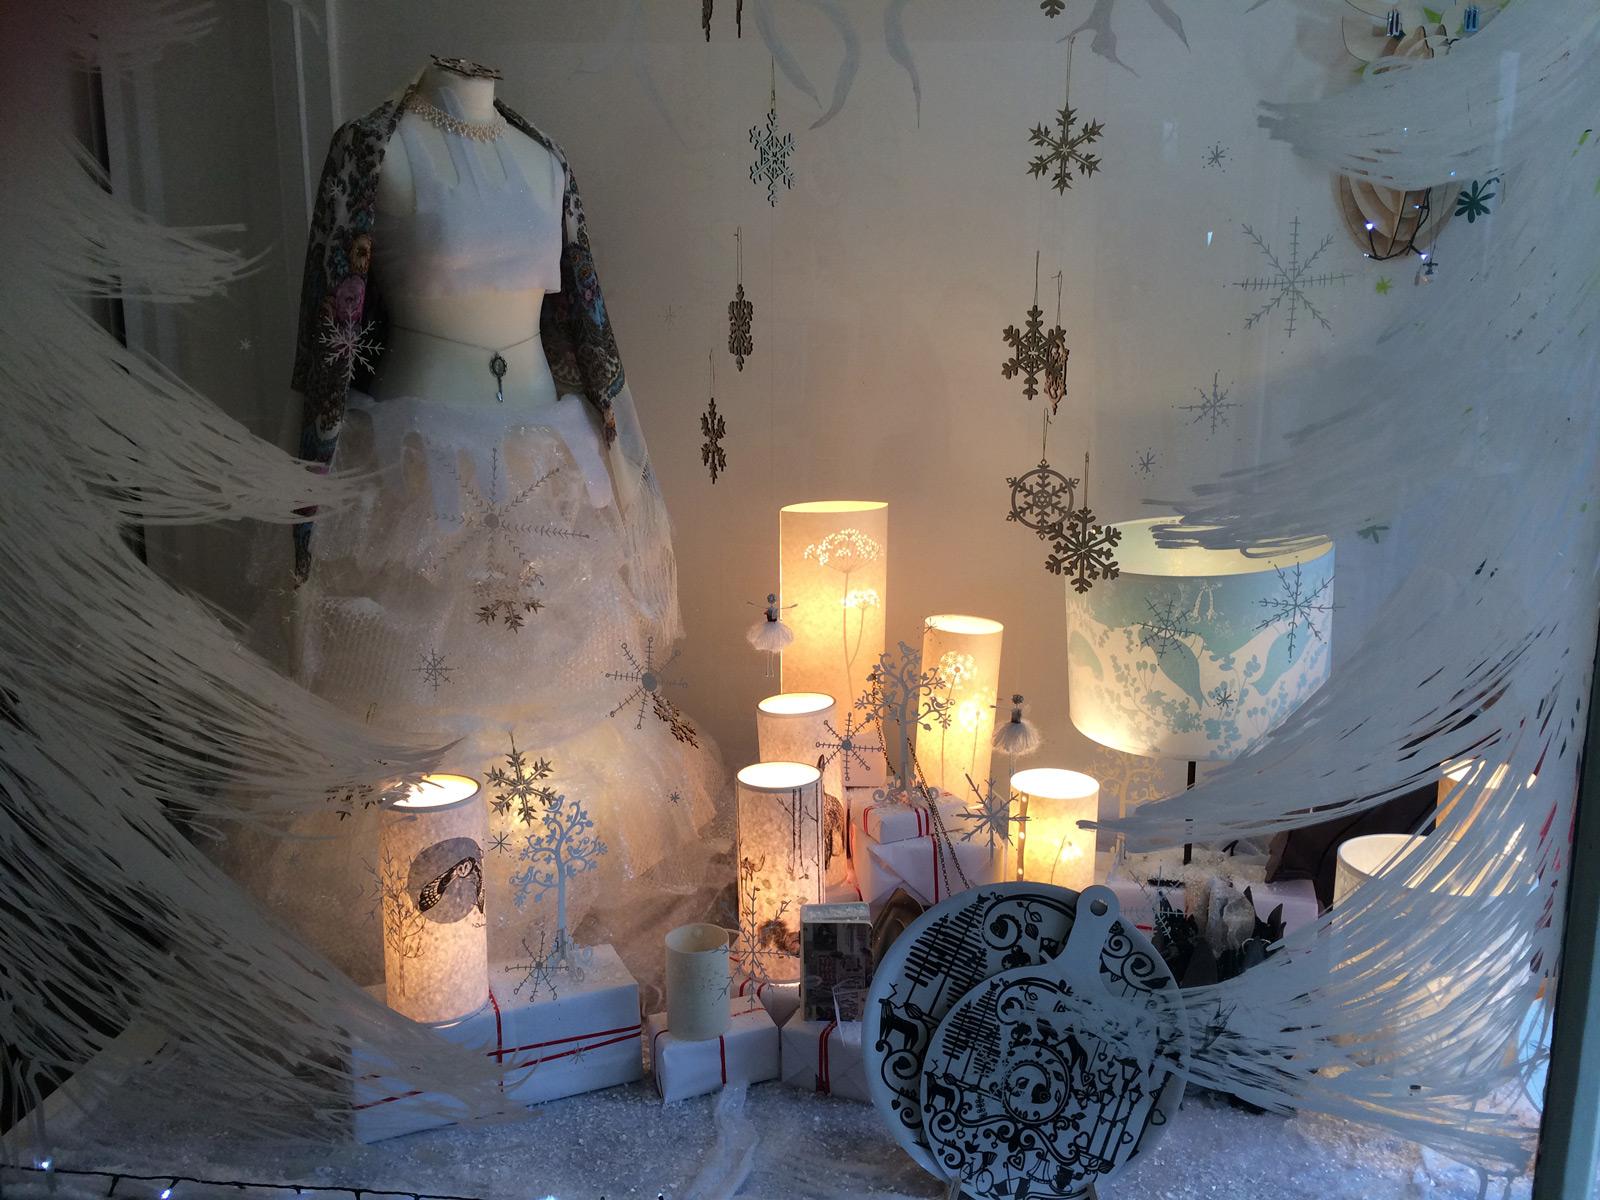 Snowflakes, white with black dishes beautifully arranged in this window display and the lamp with that dim light makes us think about the perfect winter cozy night.